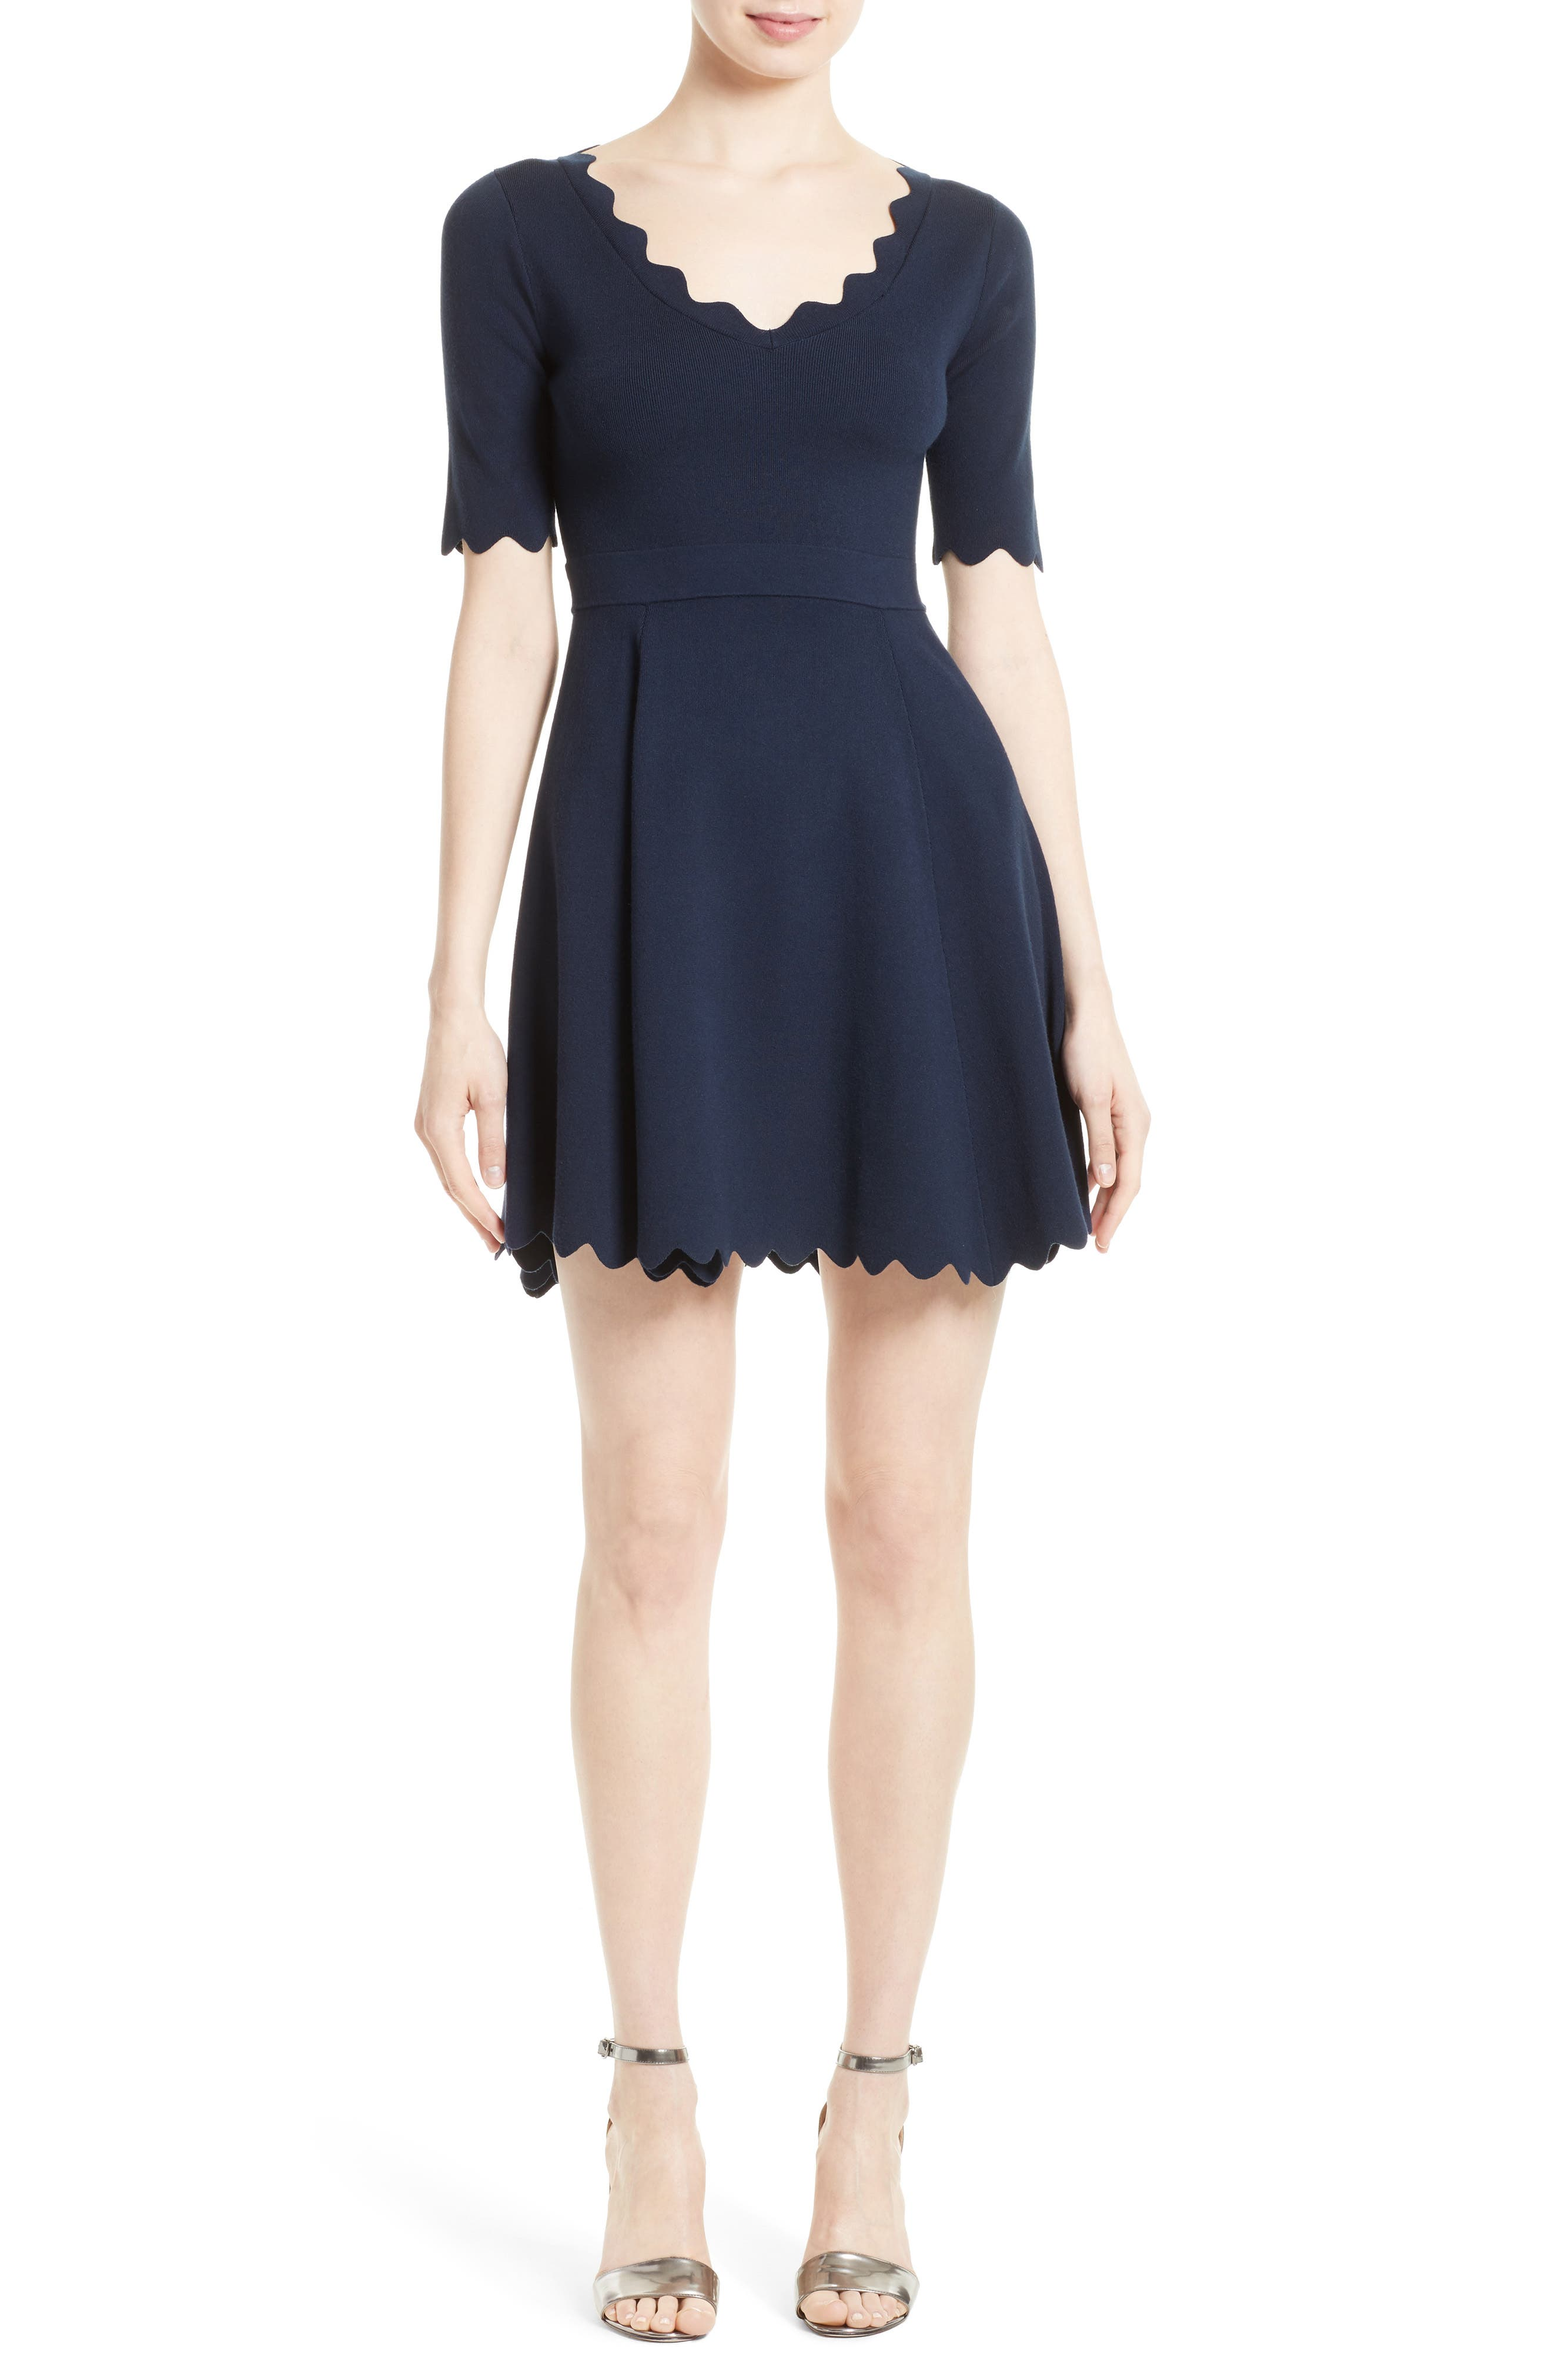 Alternate Image 1 Selected - Milly Fit & Flare Knit Dress